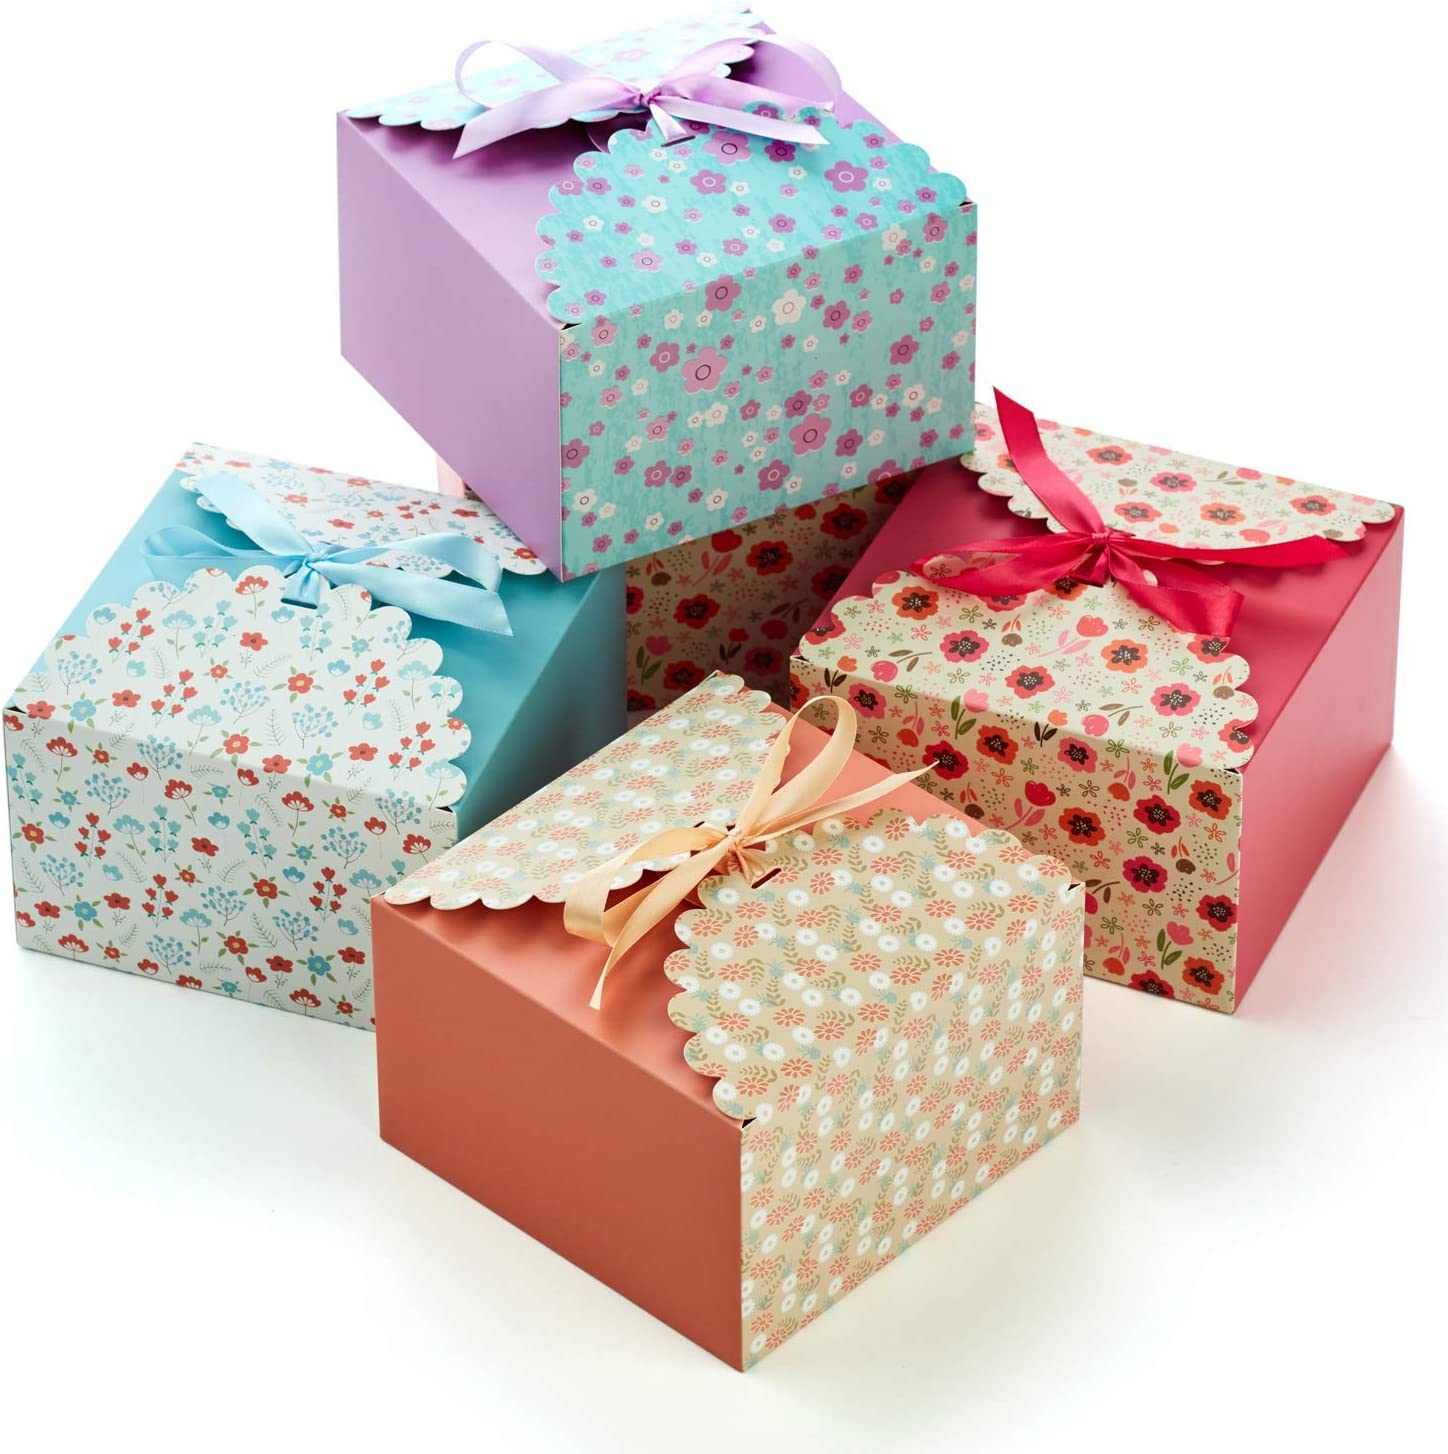 """Hayley Cherie Gift Treat Boxes with Ribbons (20 Pack) - Thick 400gsm Card - 7.3"""" x 7.3"""" x 4.6"""" Inches - for Cakes, Cookies, Goodies, Candy, Party Christmas, Birthdays, Bridesmaids, Weddings (Large)"""